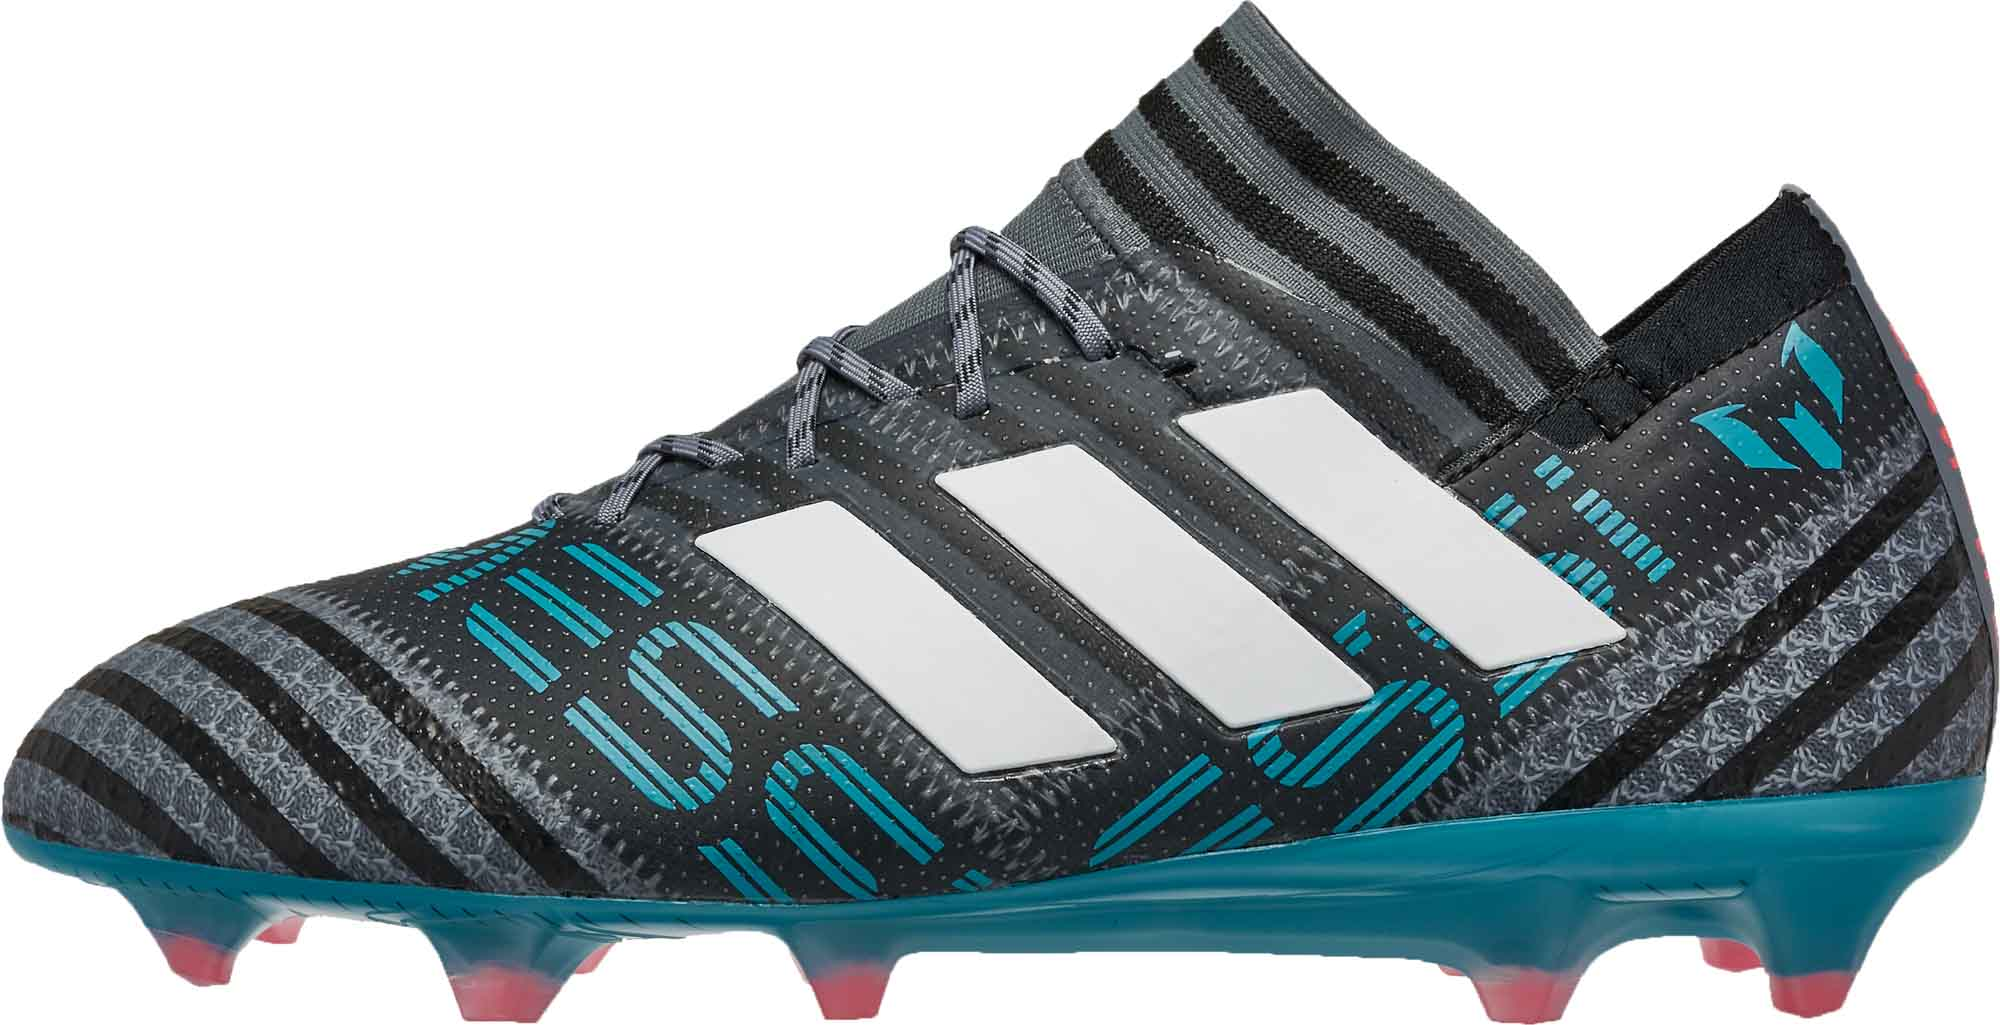 official photos 33c6f 55fa6 ... adidas nemeziz messi 17.1 fg grey white